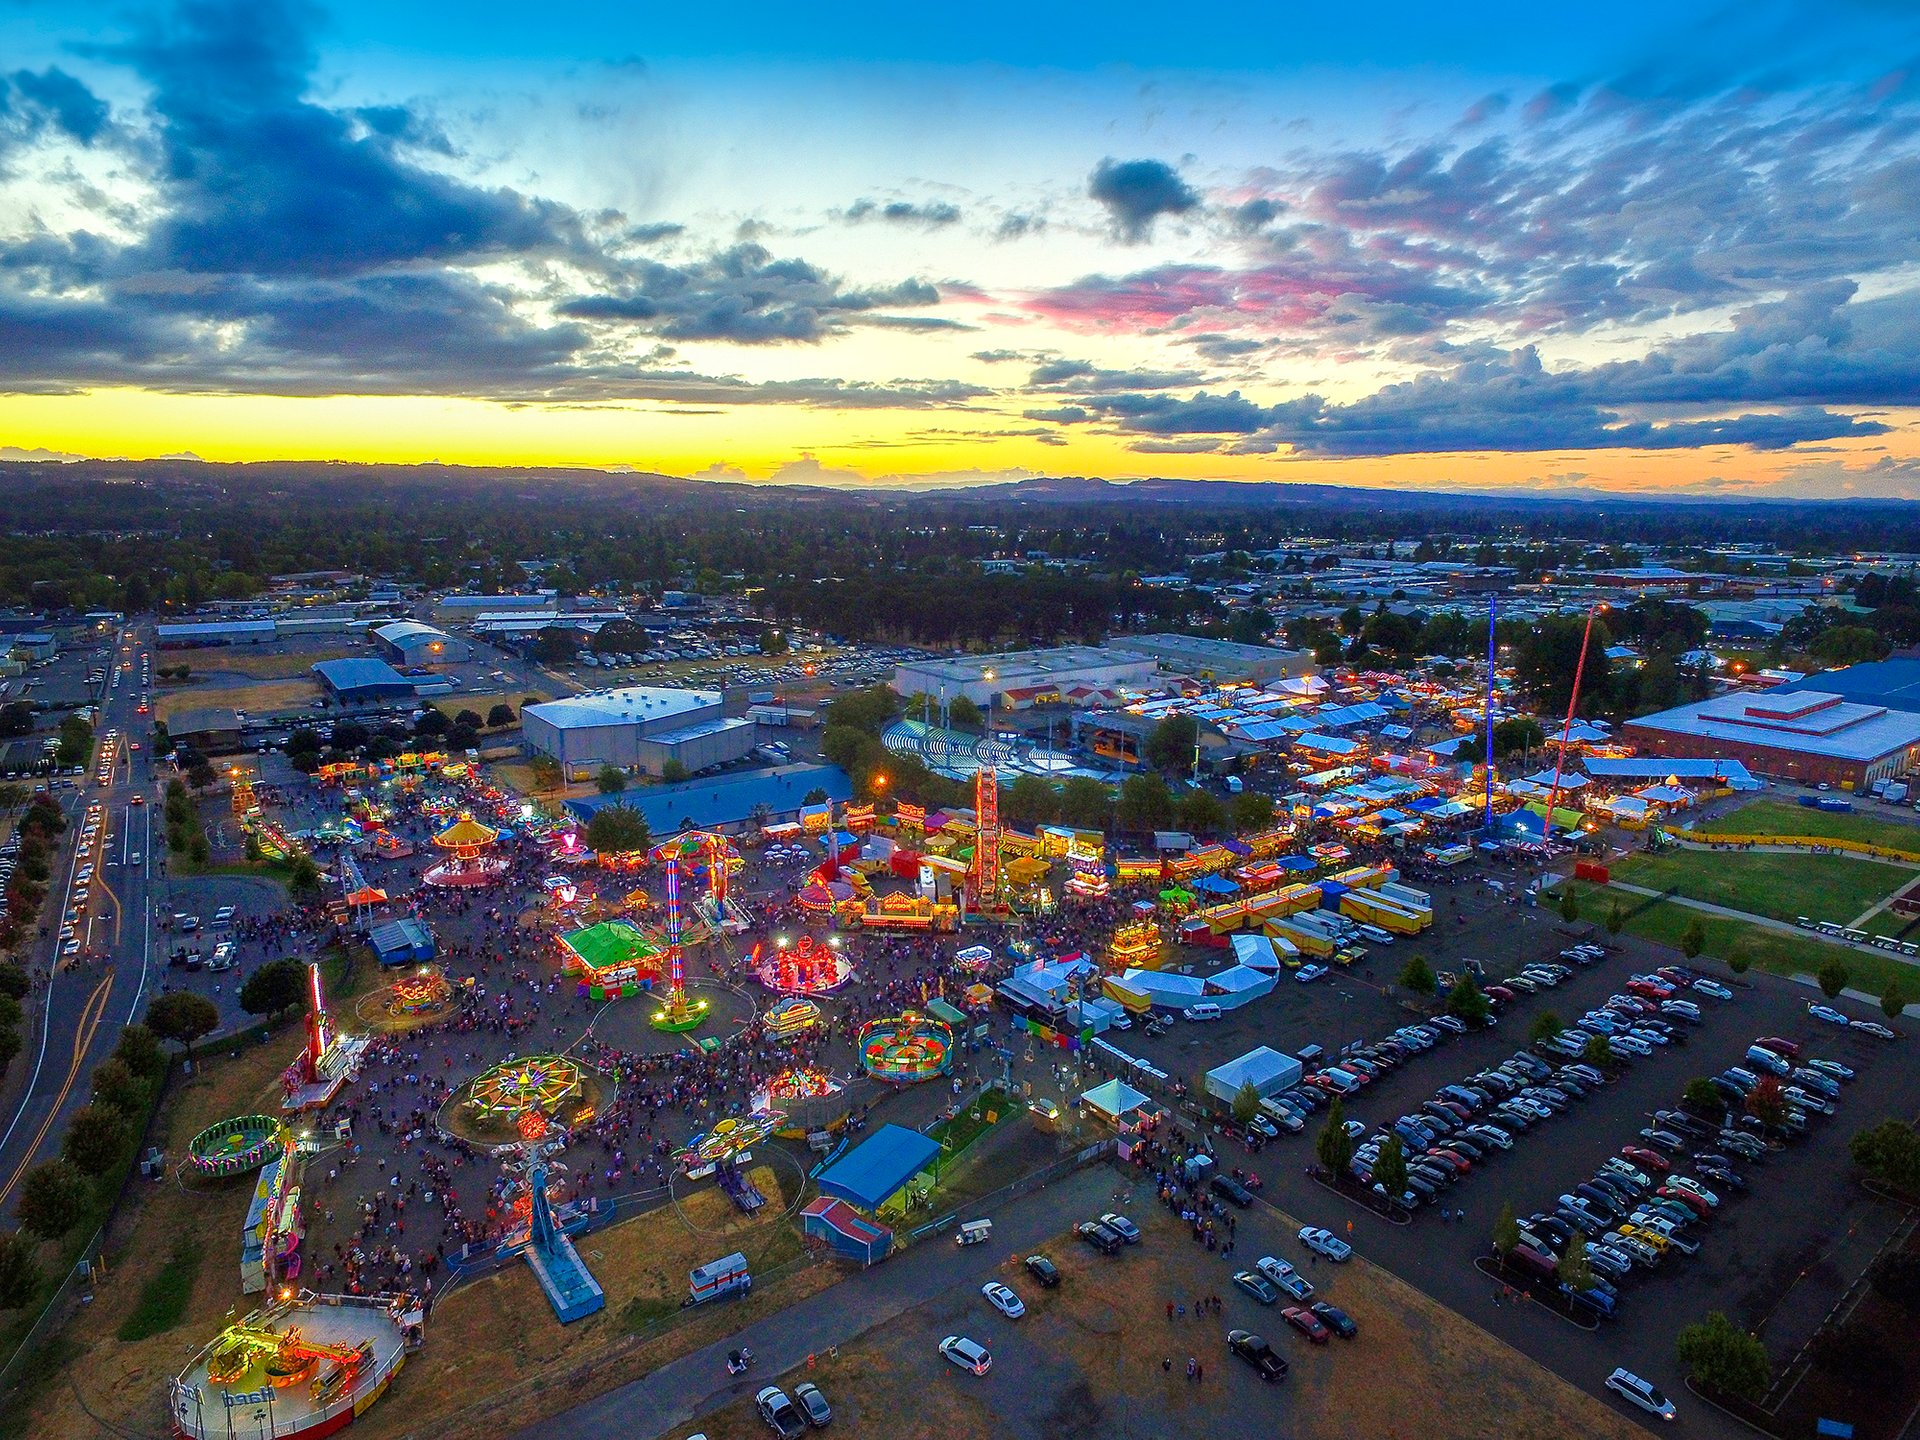 Oregon State Fair in Portland - Best Season 2020